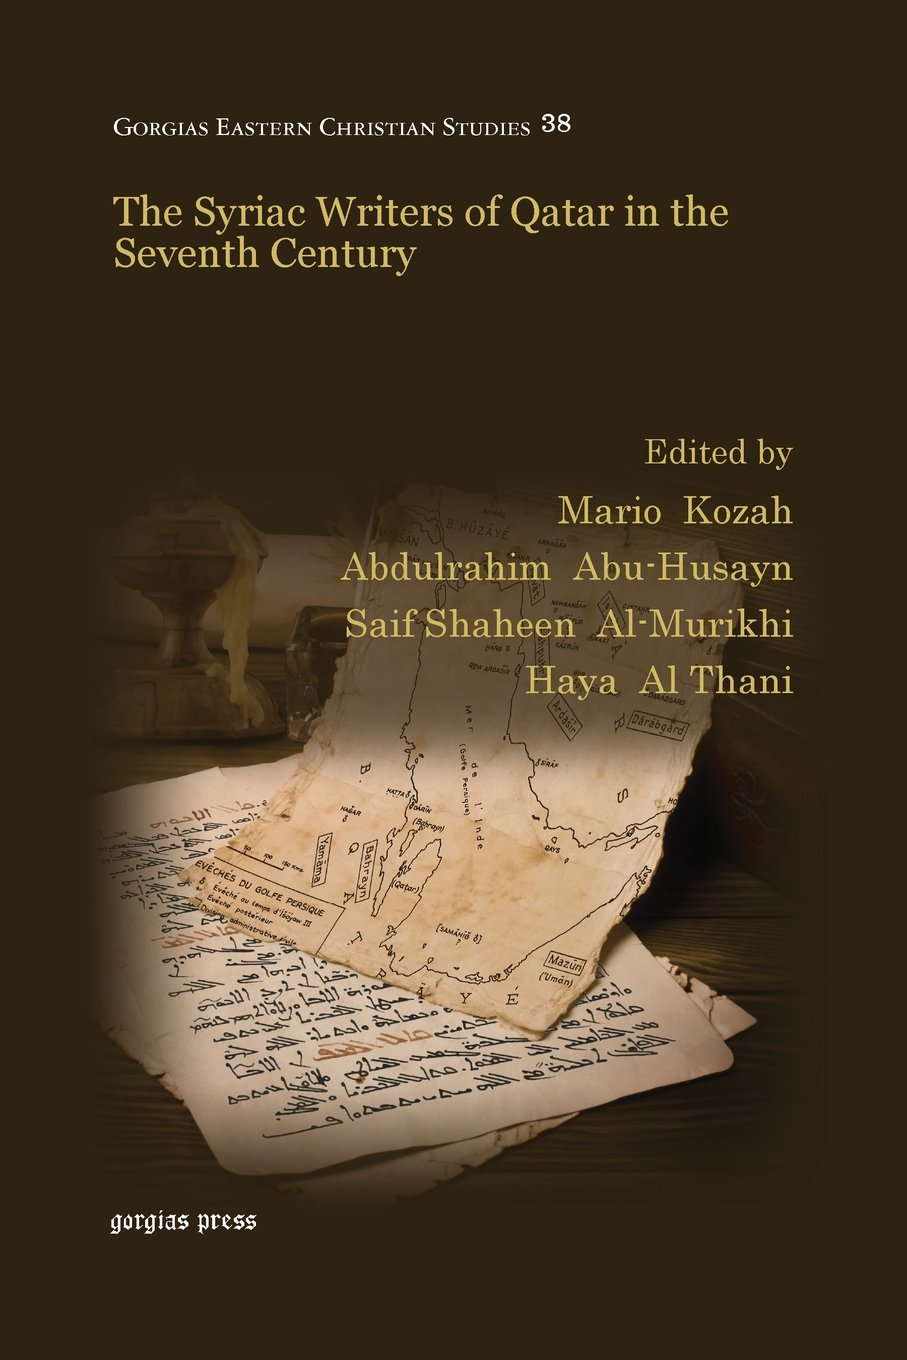 Fig. 1 : couverture de The Syriac Writers of Qatar in the Seventh Century